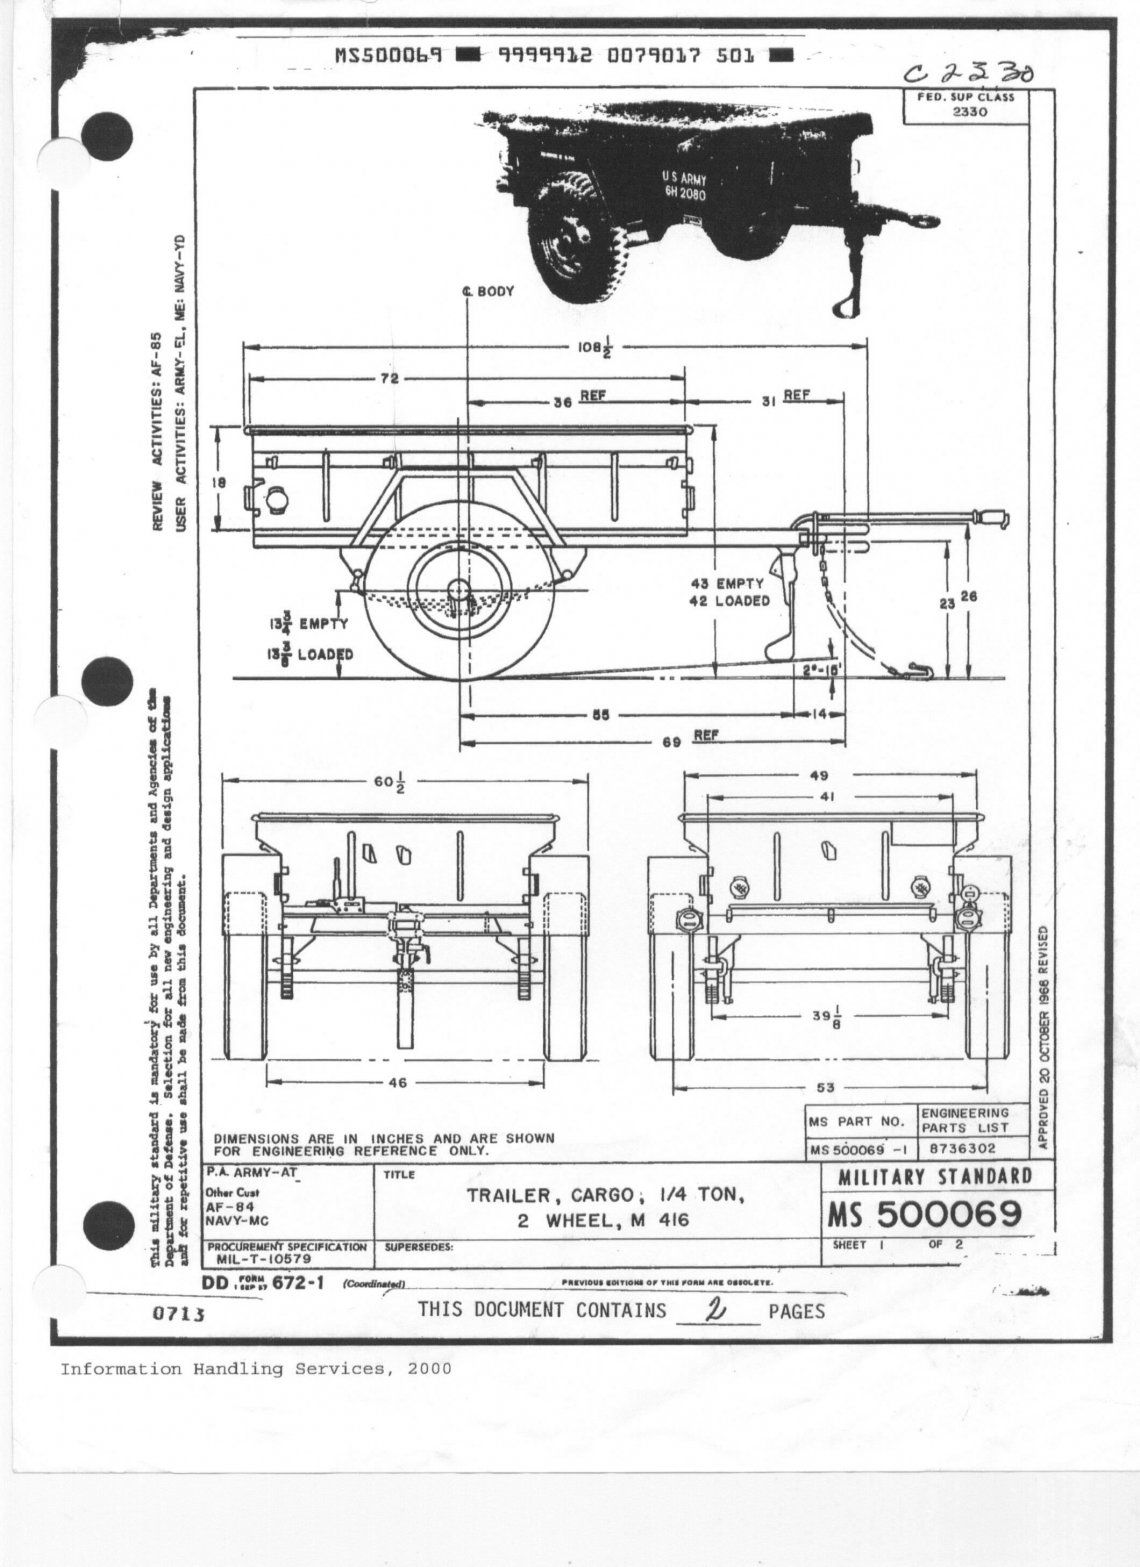 Military Utility Trailer Diagram Diy Enthusiasts Wiring Diagrams Harbor Freight 420149d1340401585 Mini Type Ultimate Build Up Rh Pinterest Com For Lights Pj